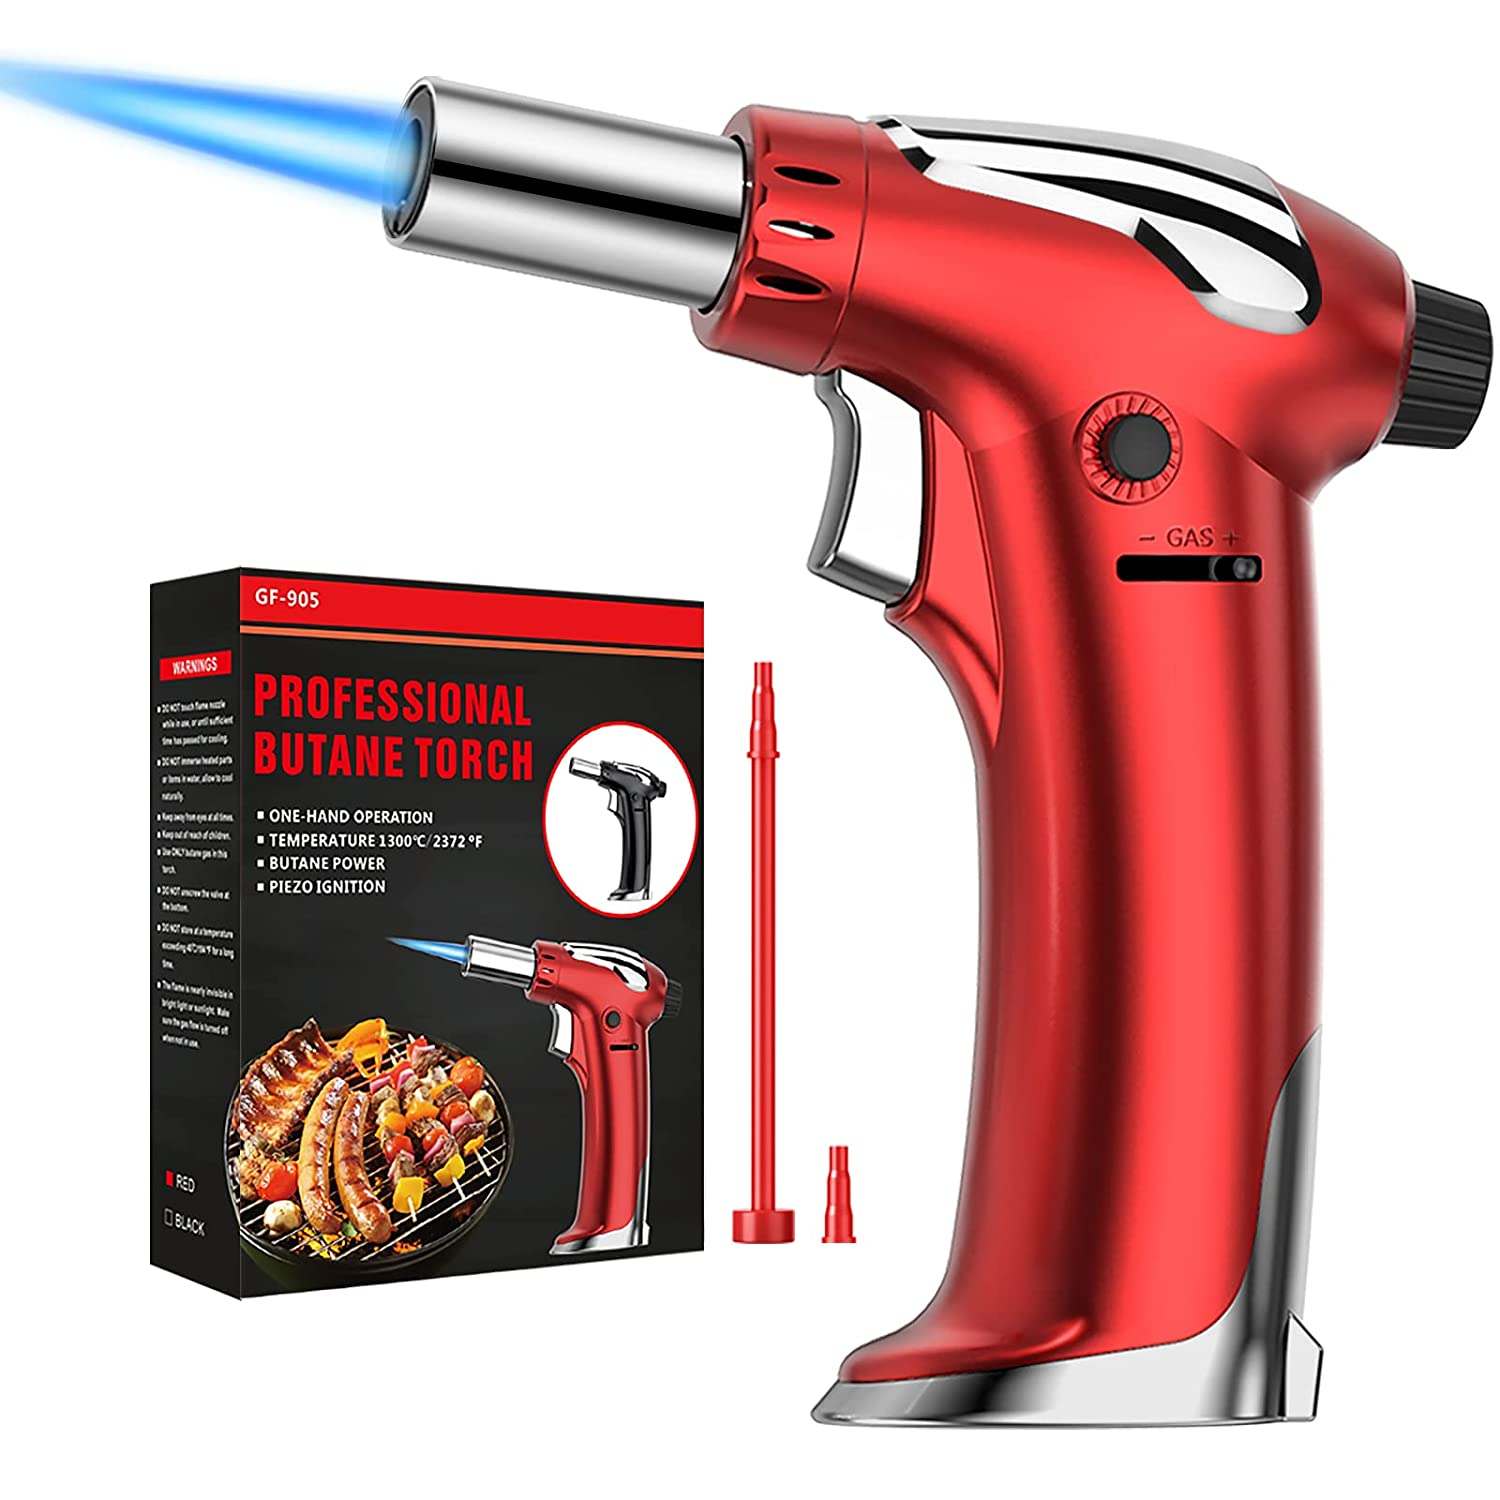 NANW Blow Cooking Torch Lighter